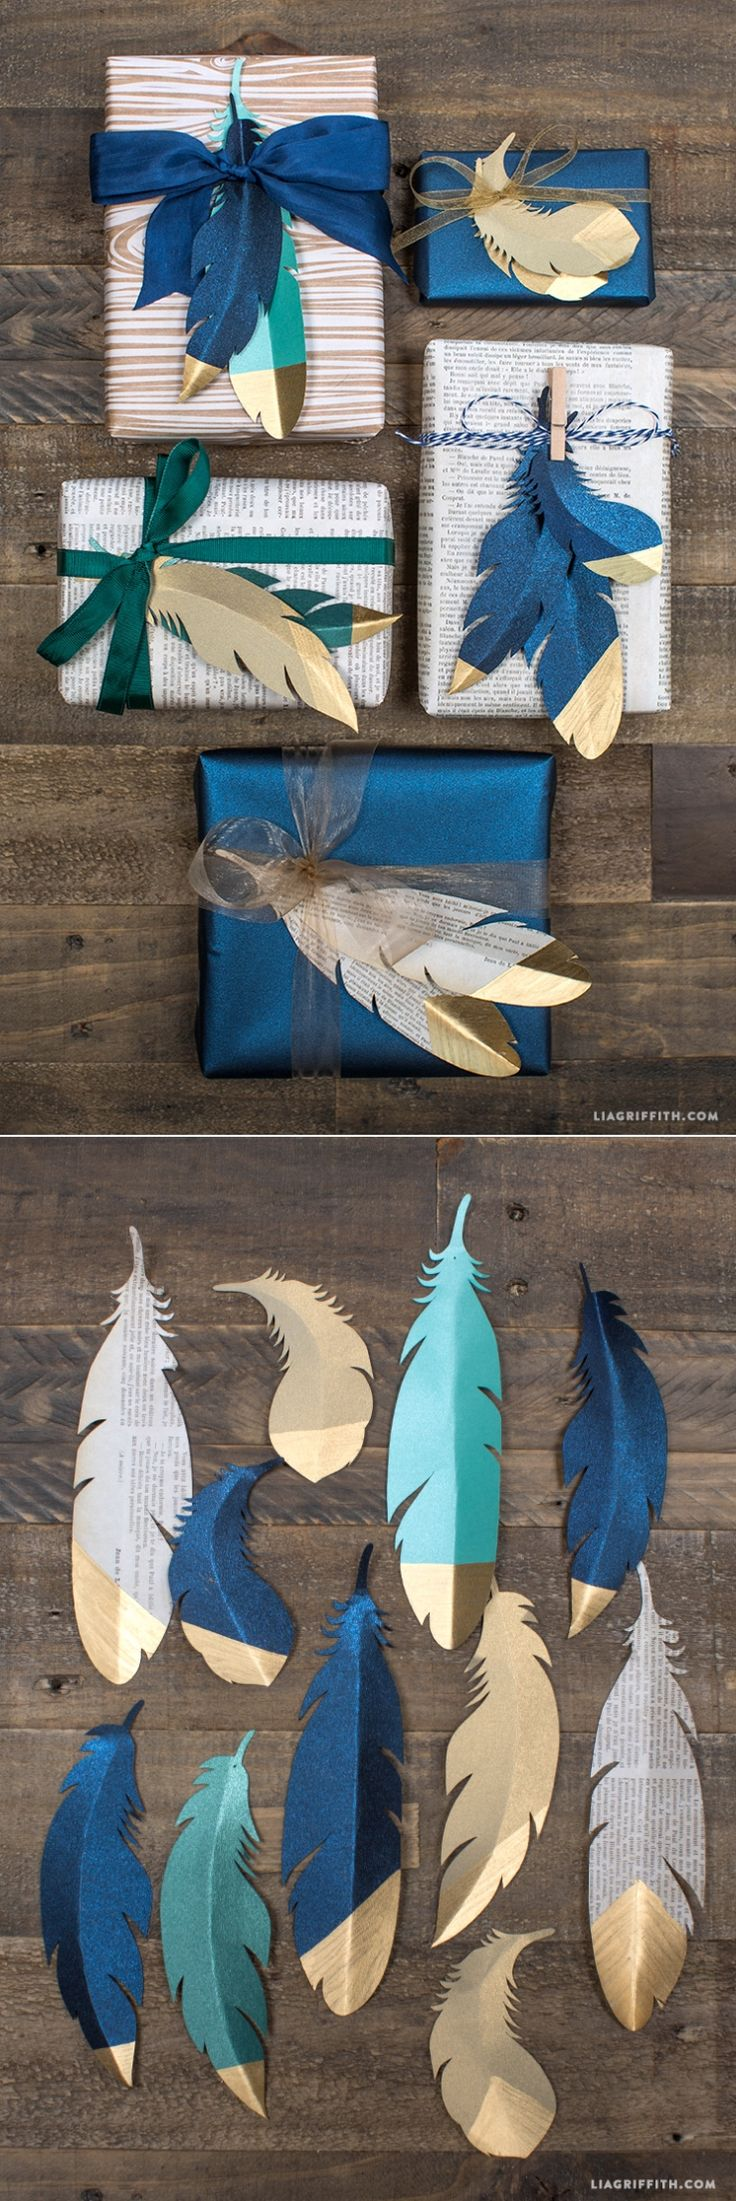 #paperfeathers #goldfeathers #giftwrapping www.LiaGriffith.com: